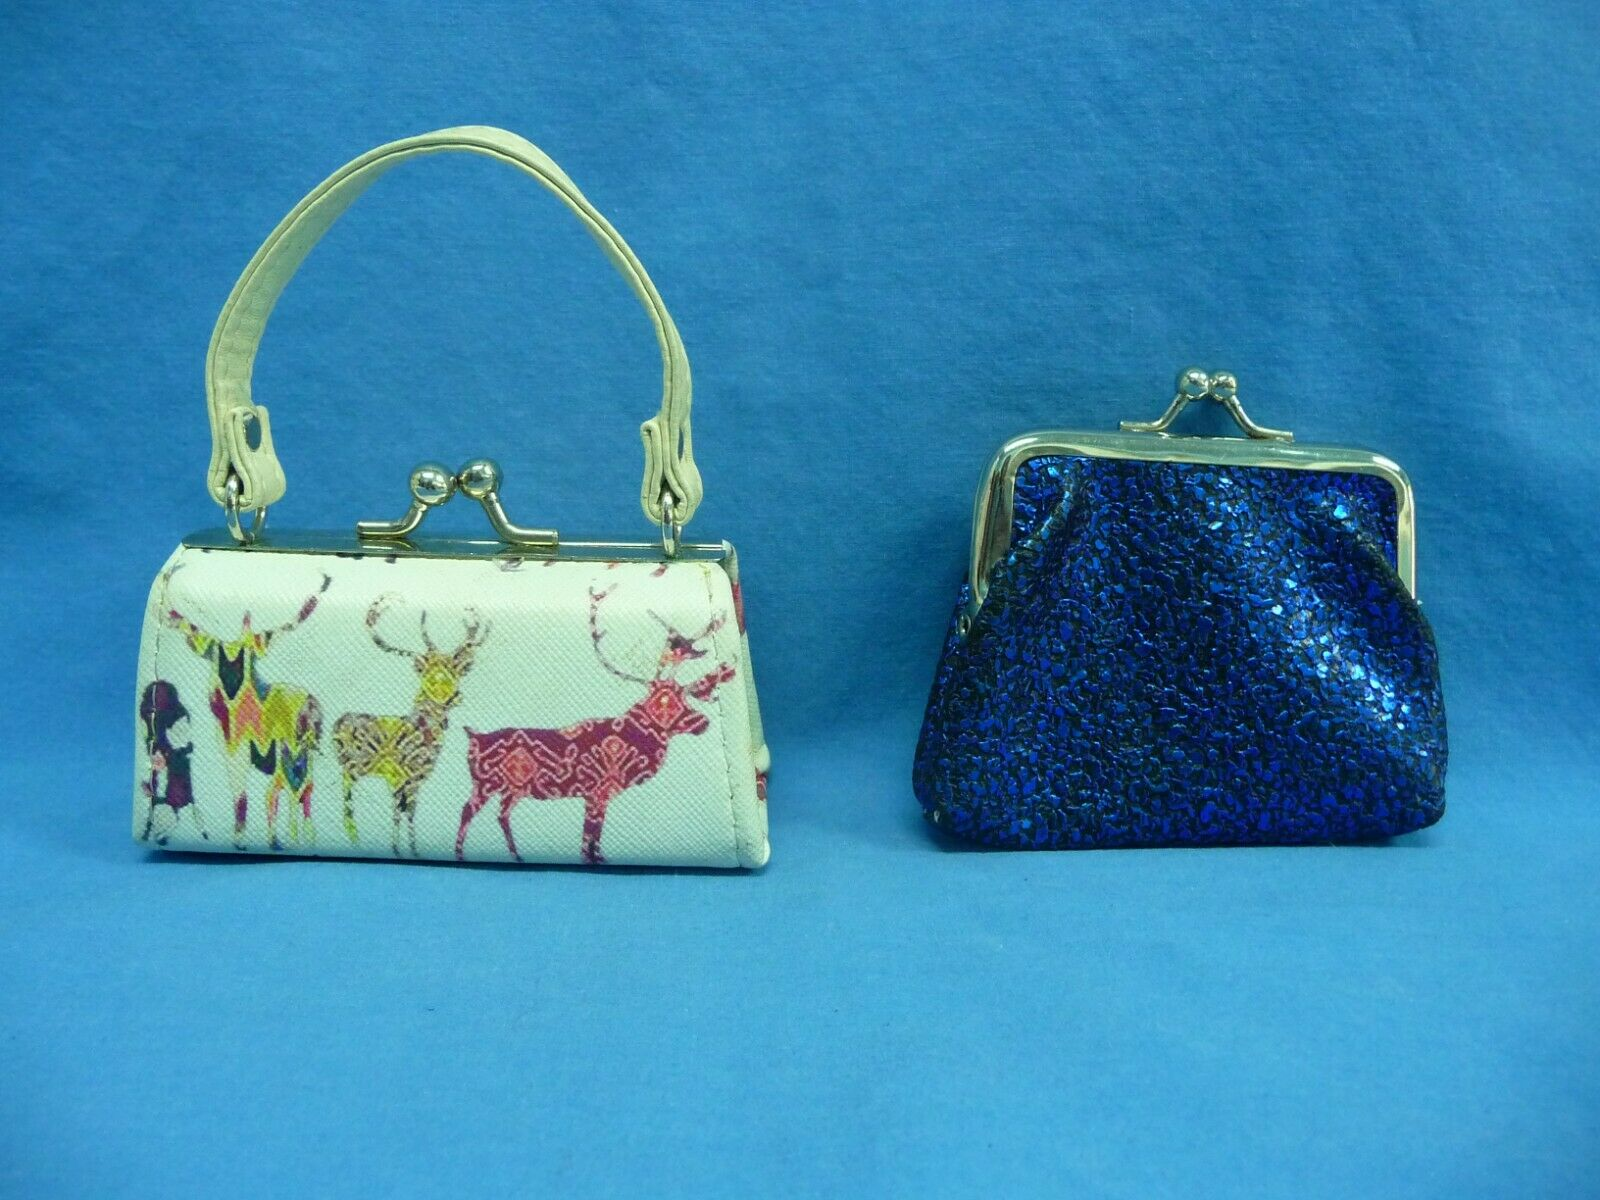 Lot of 2 Coin Purses 1 Purse Shaped With Wildlife Print 1 Glittery Blue